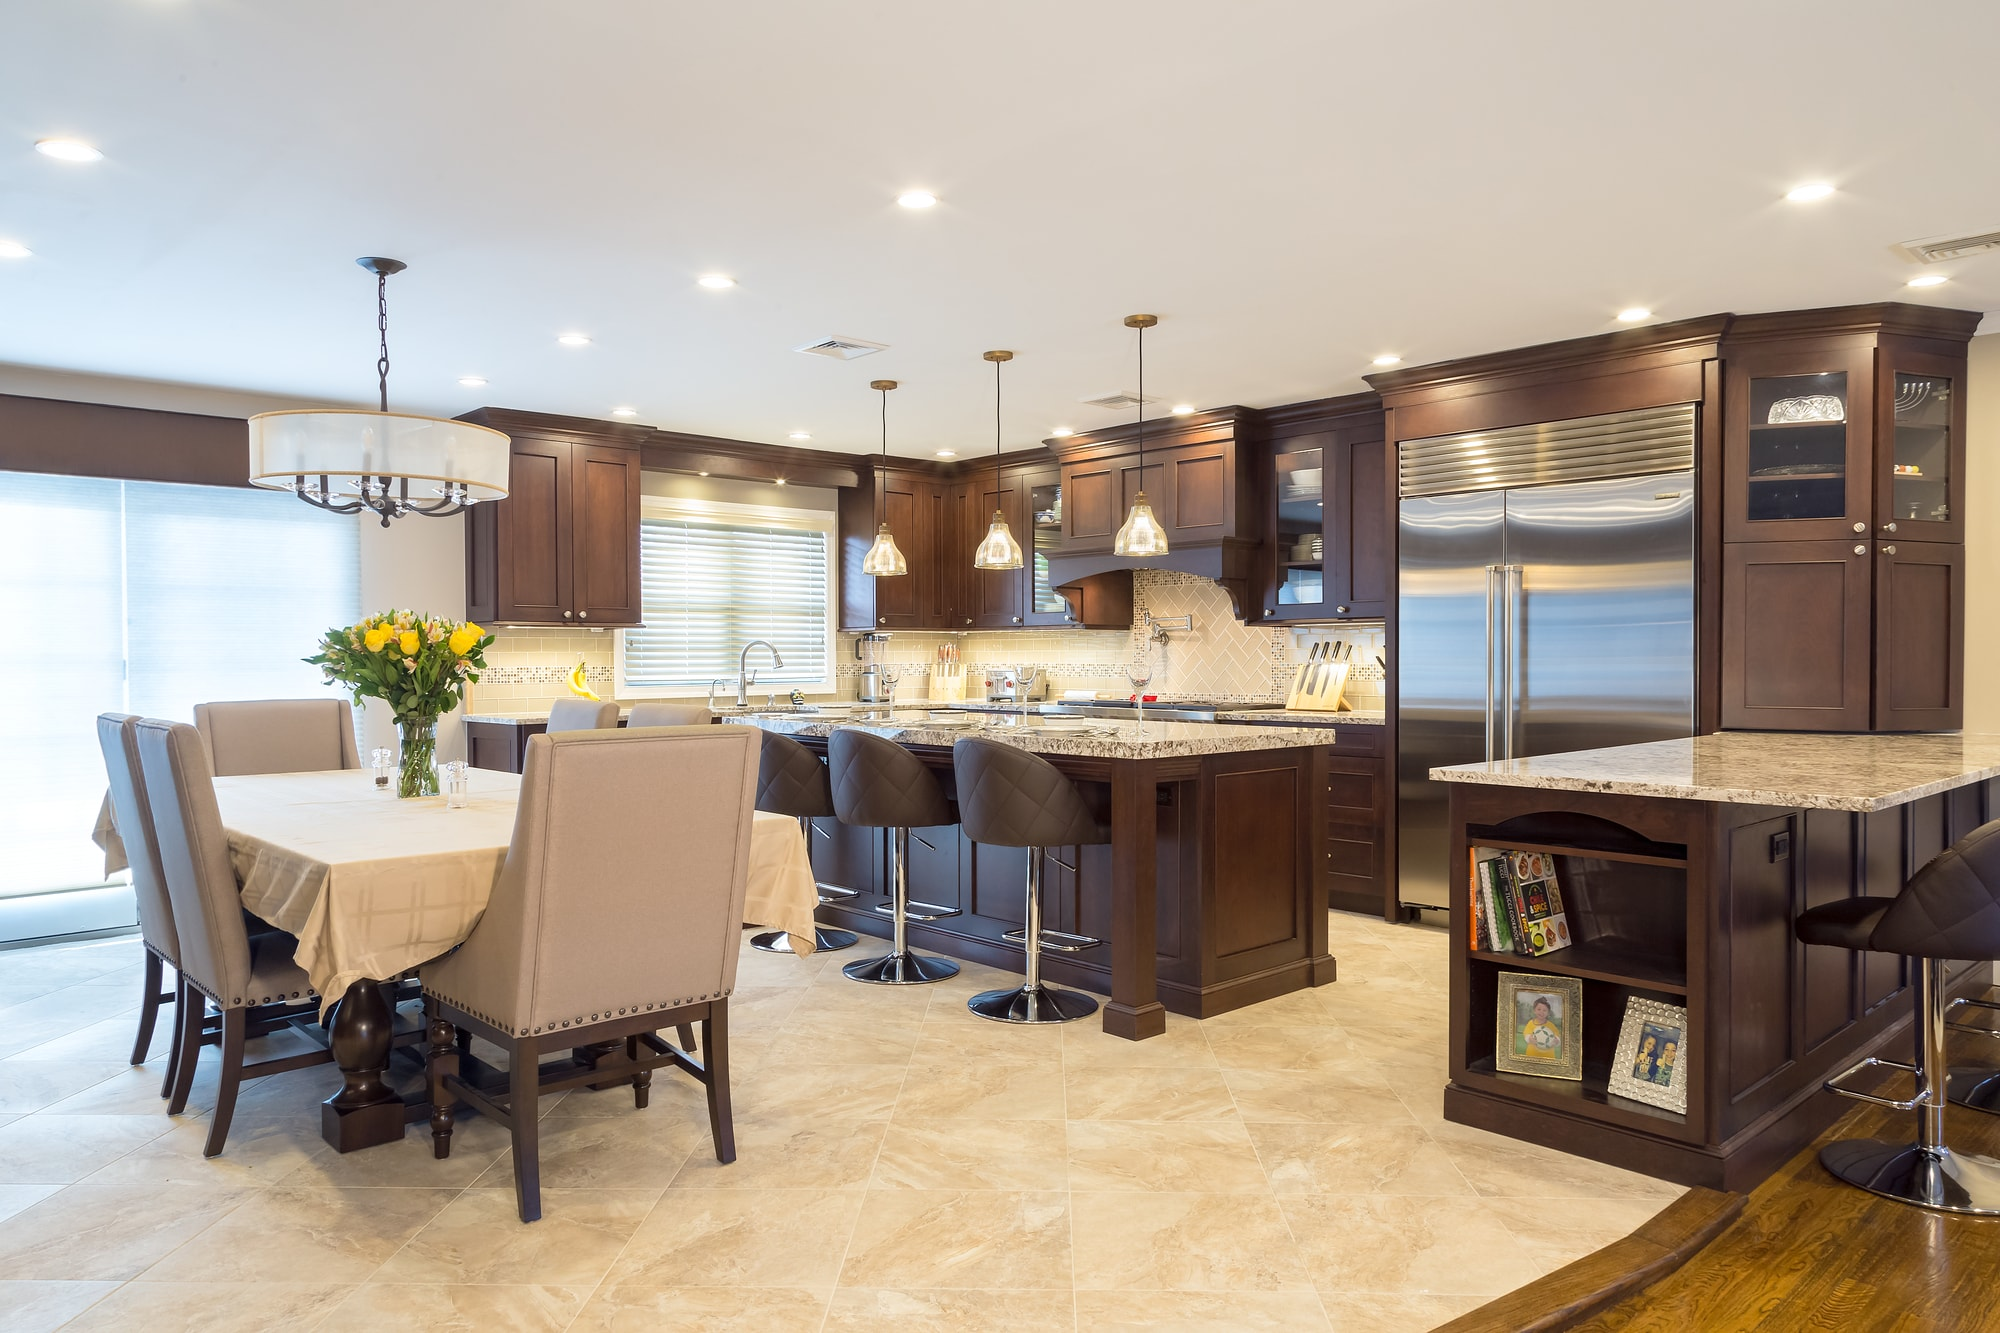 Traditional style kitchen with upper wooden cabinet